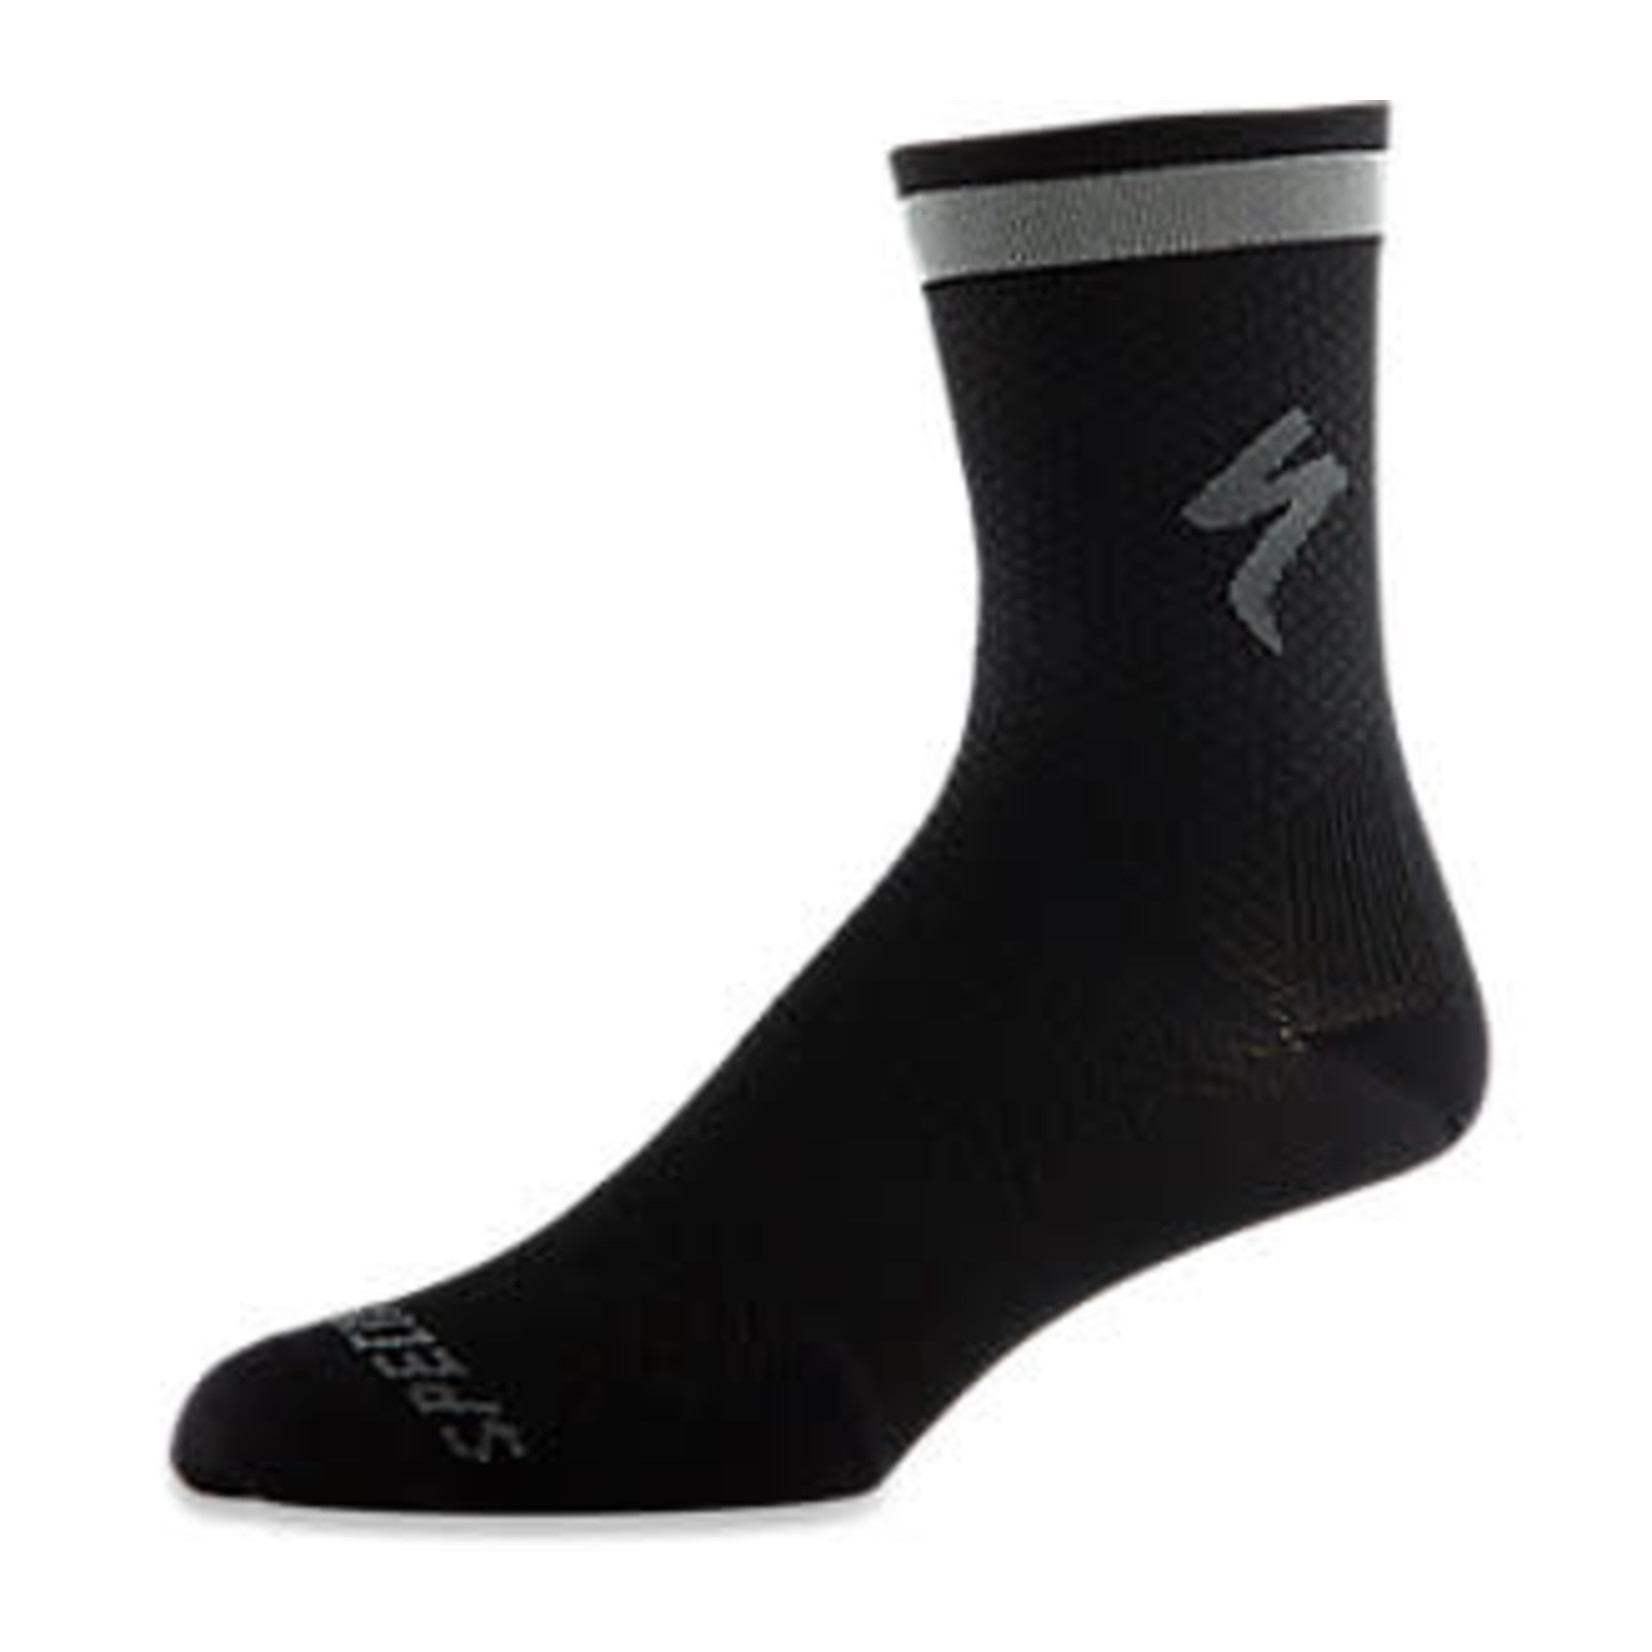 Specialized Specialized Soft Air Reflective Tall Socks